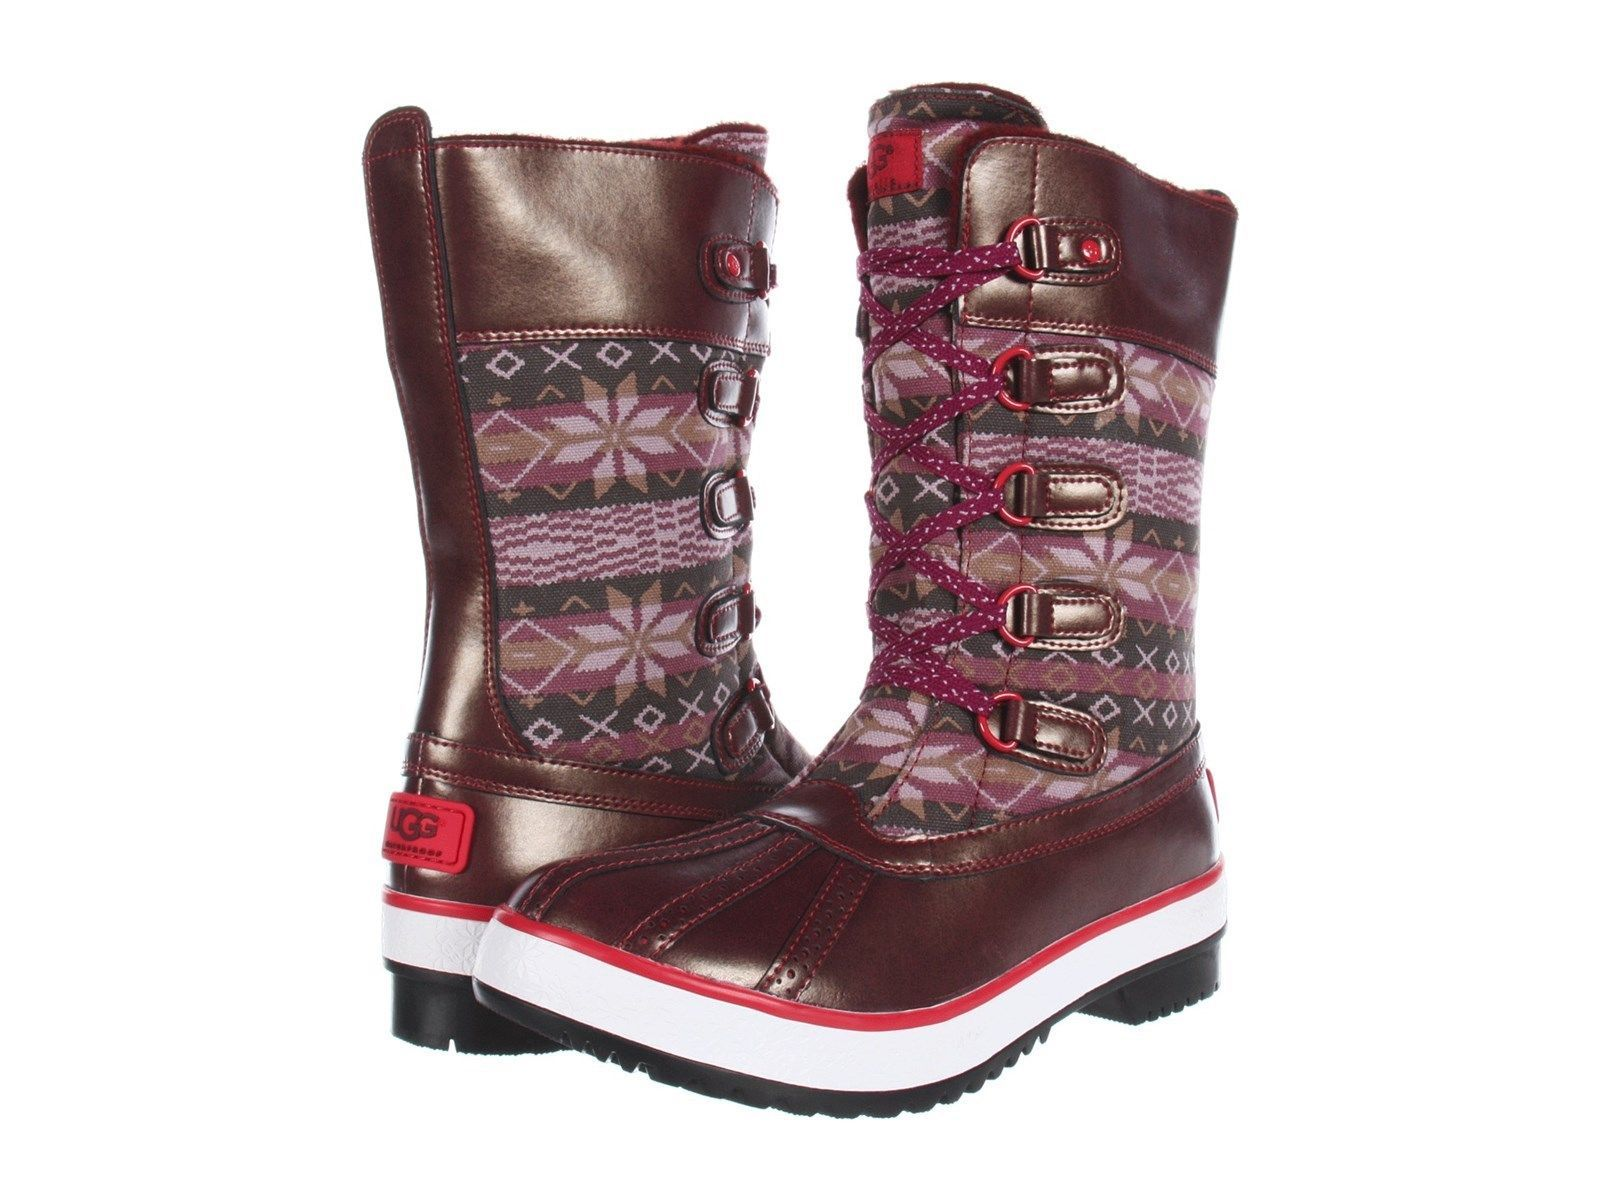 704bd6a12cc NEW UGG Australia Baroness Lace Up Winter Rain Boots 6 Waterproof ...